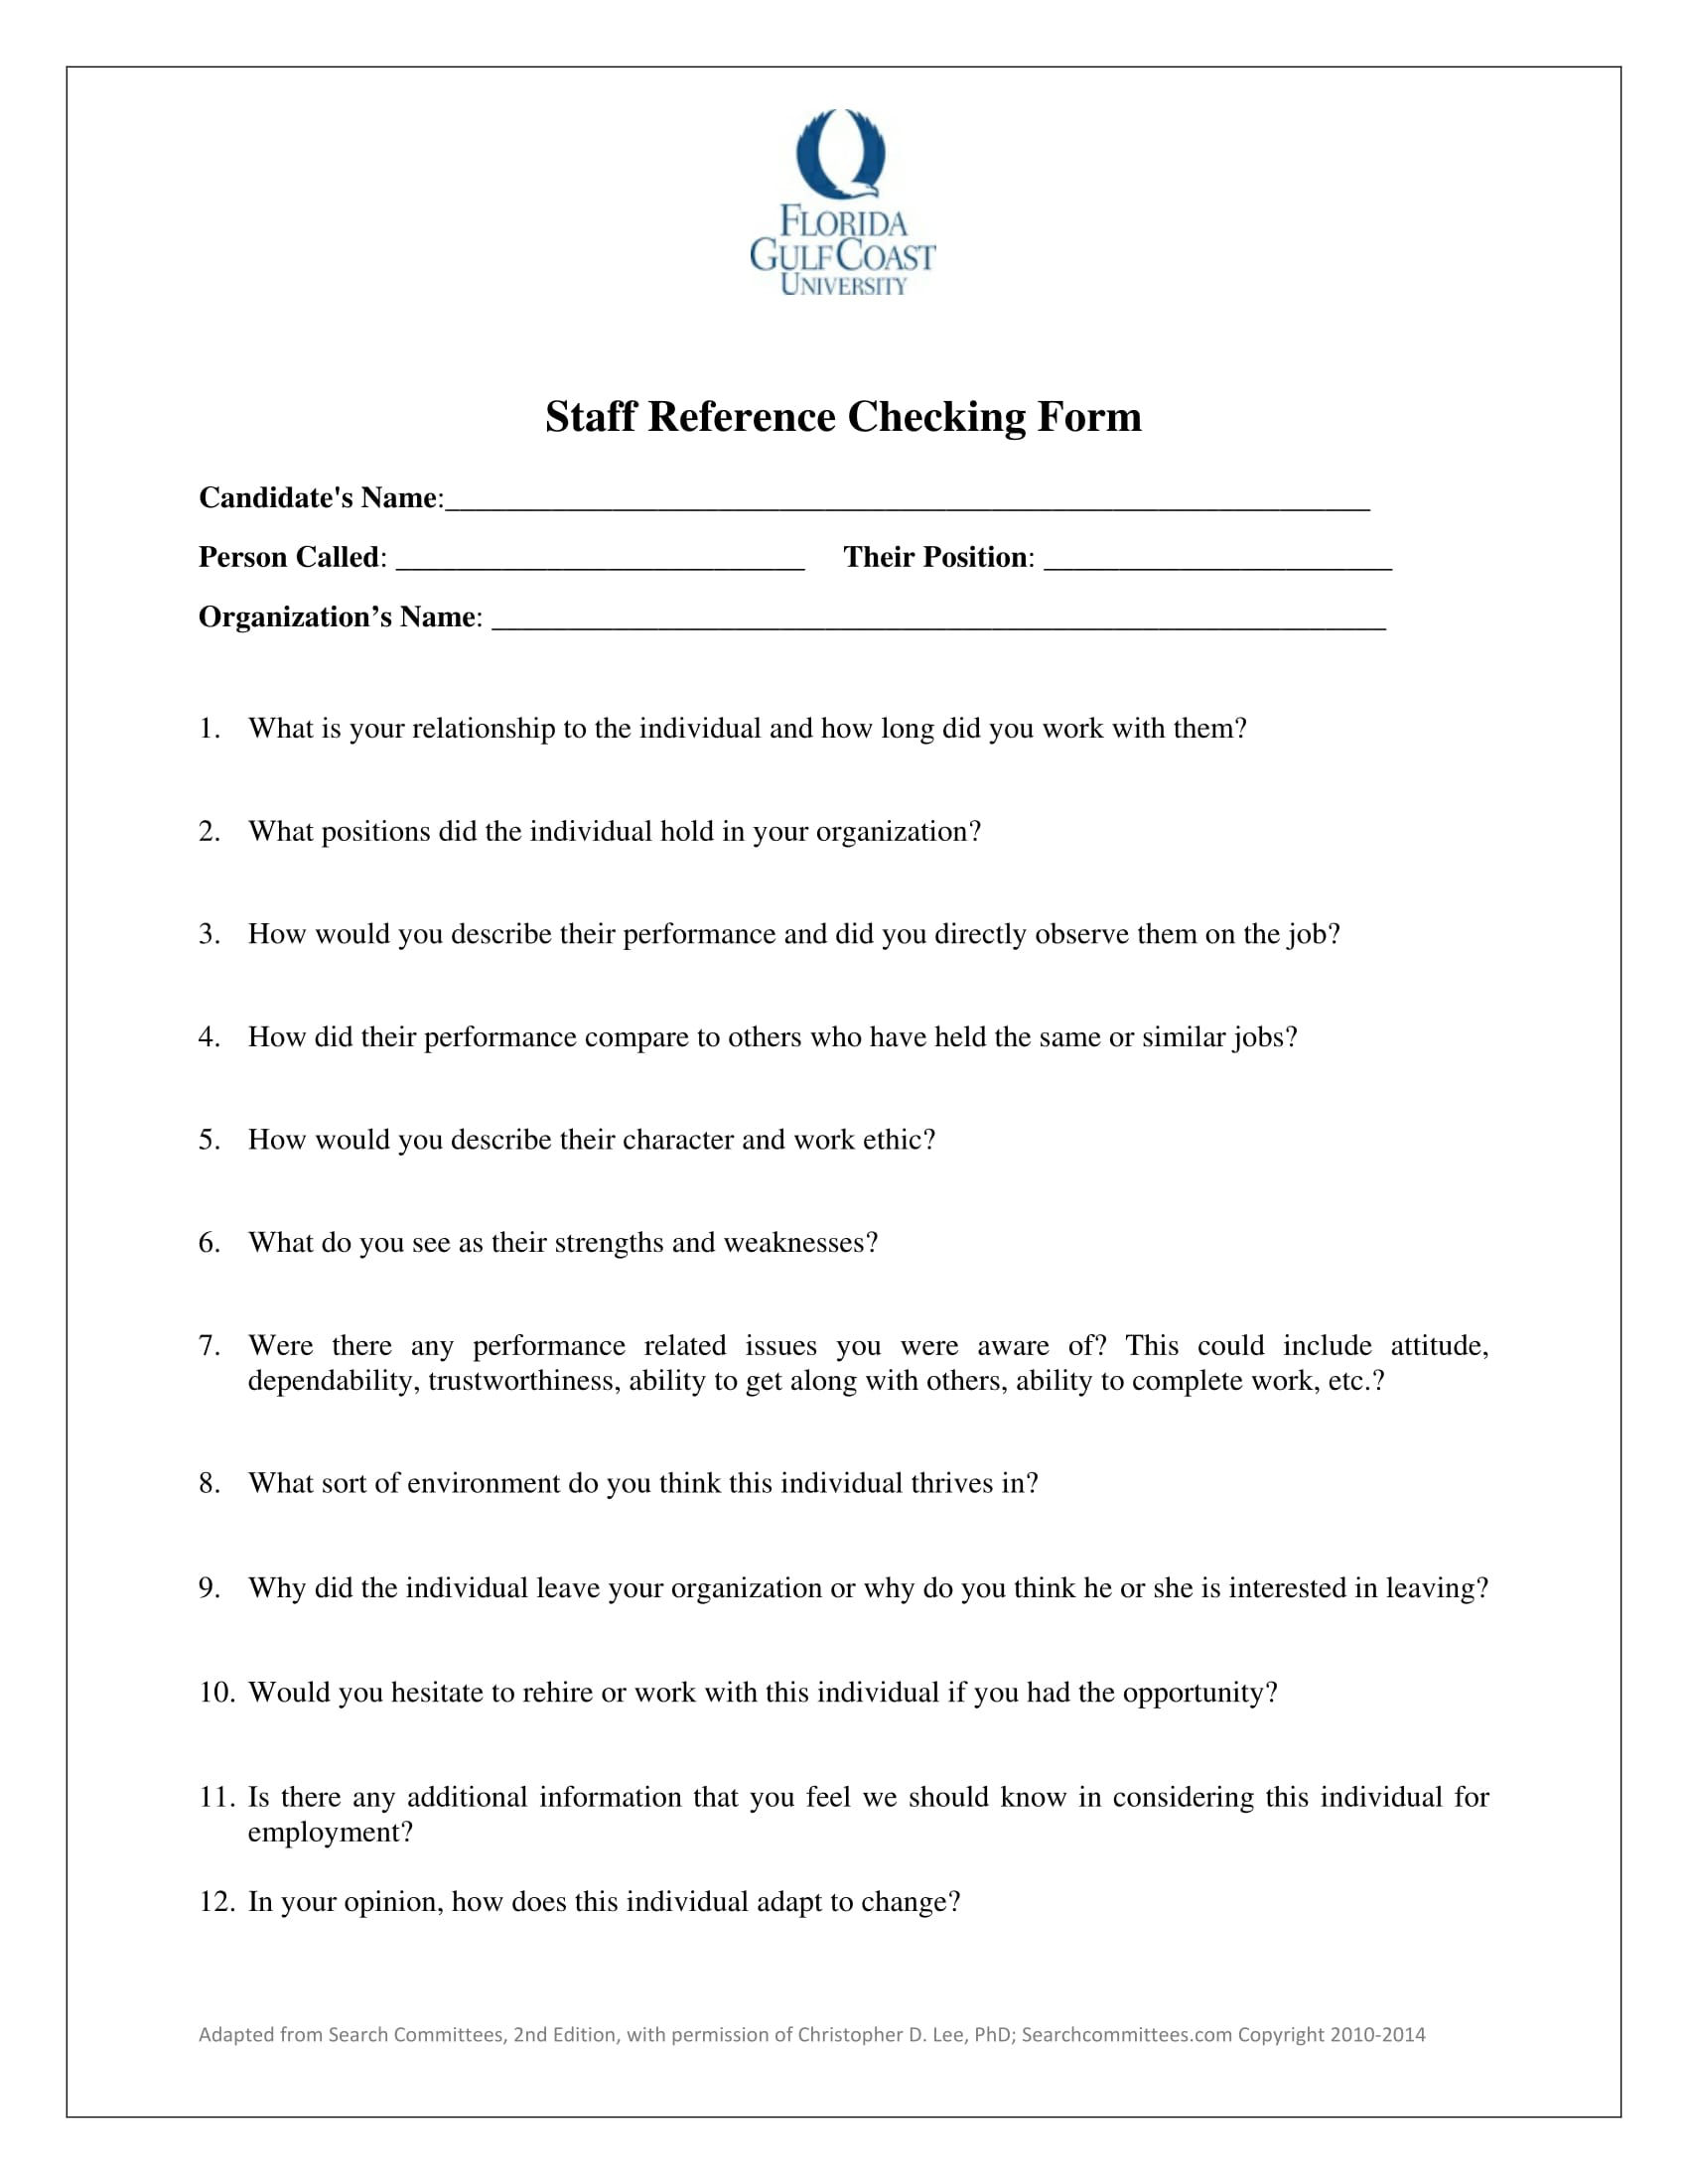 staff reference checking form 1